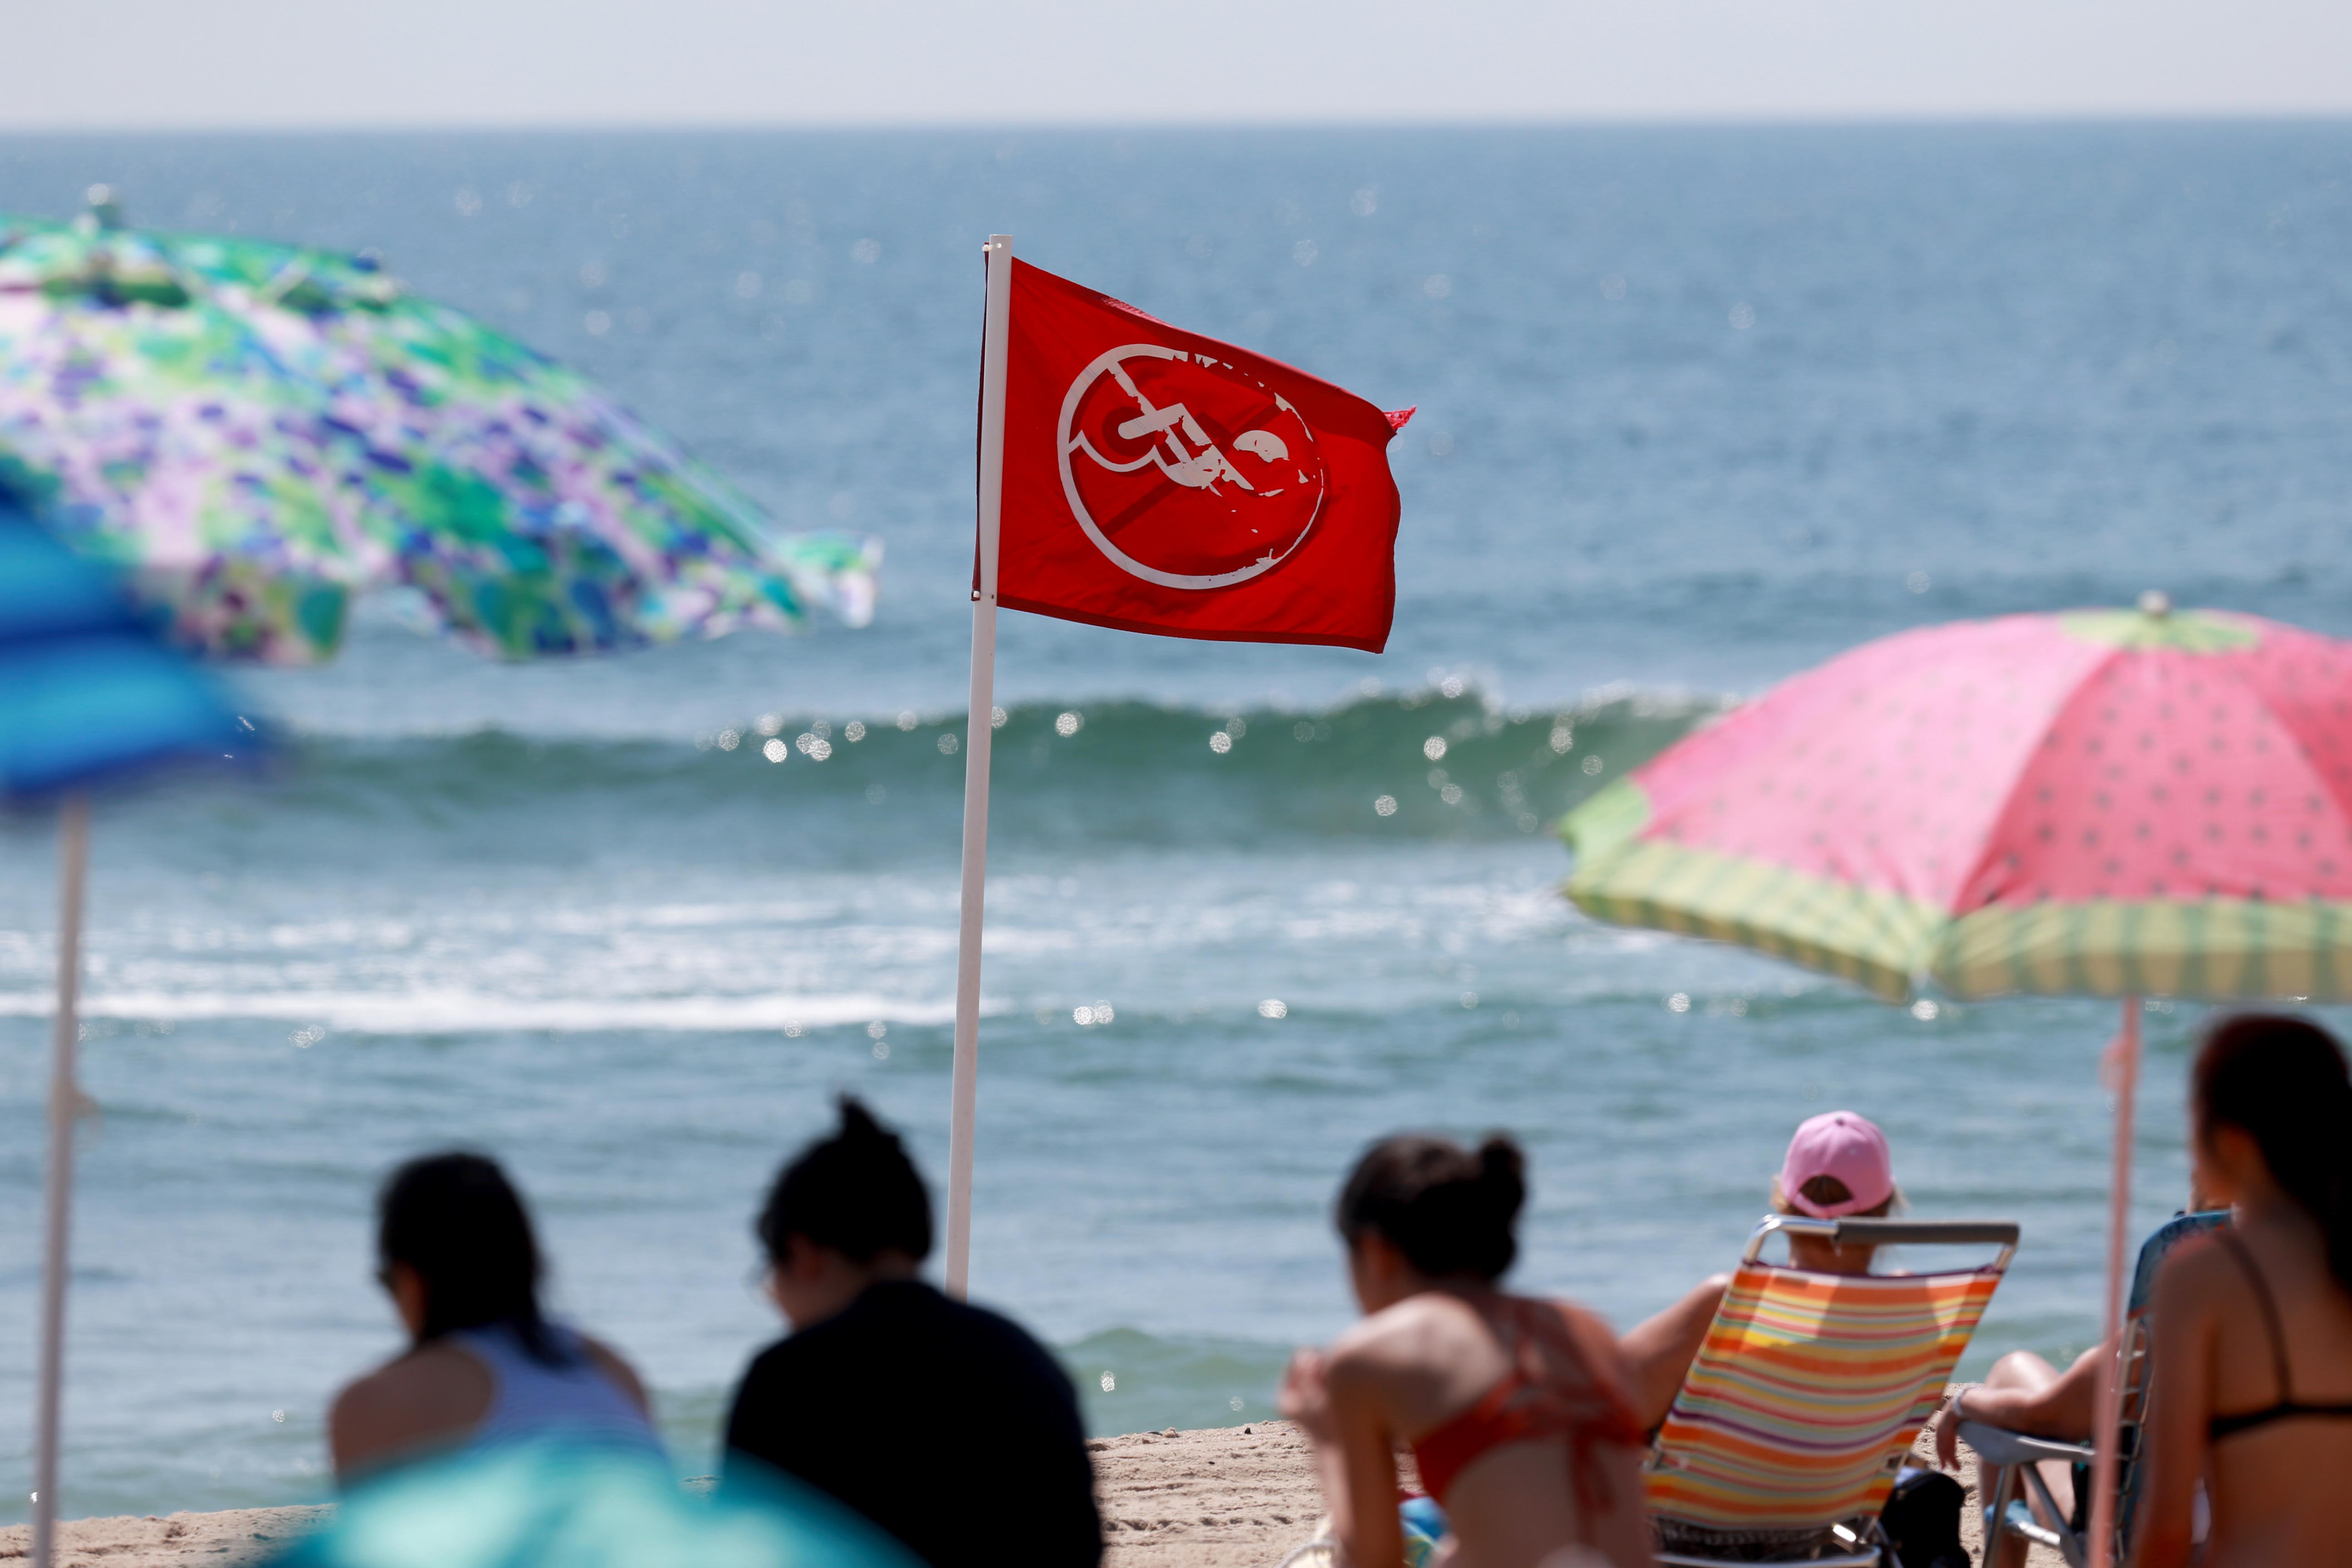 N.J. weather: Final summer weekend brings sun and warmth, but dangerous waves from hurricane